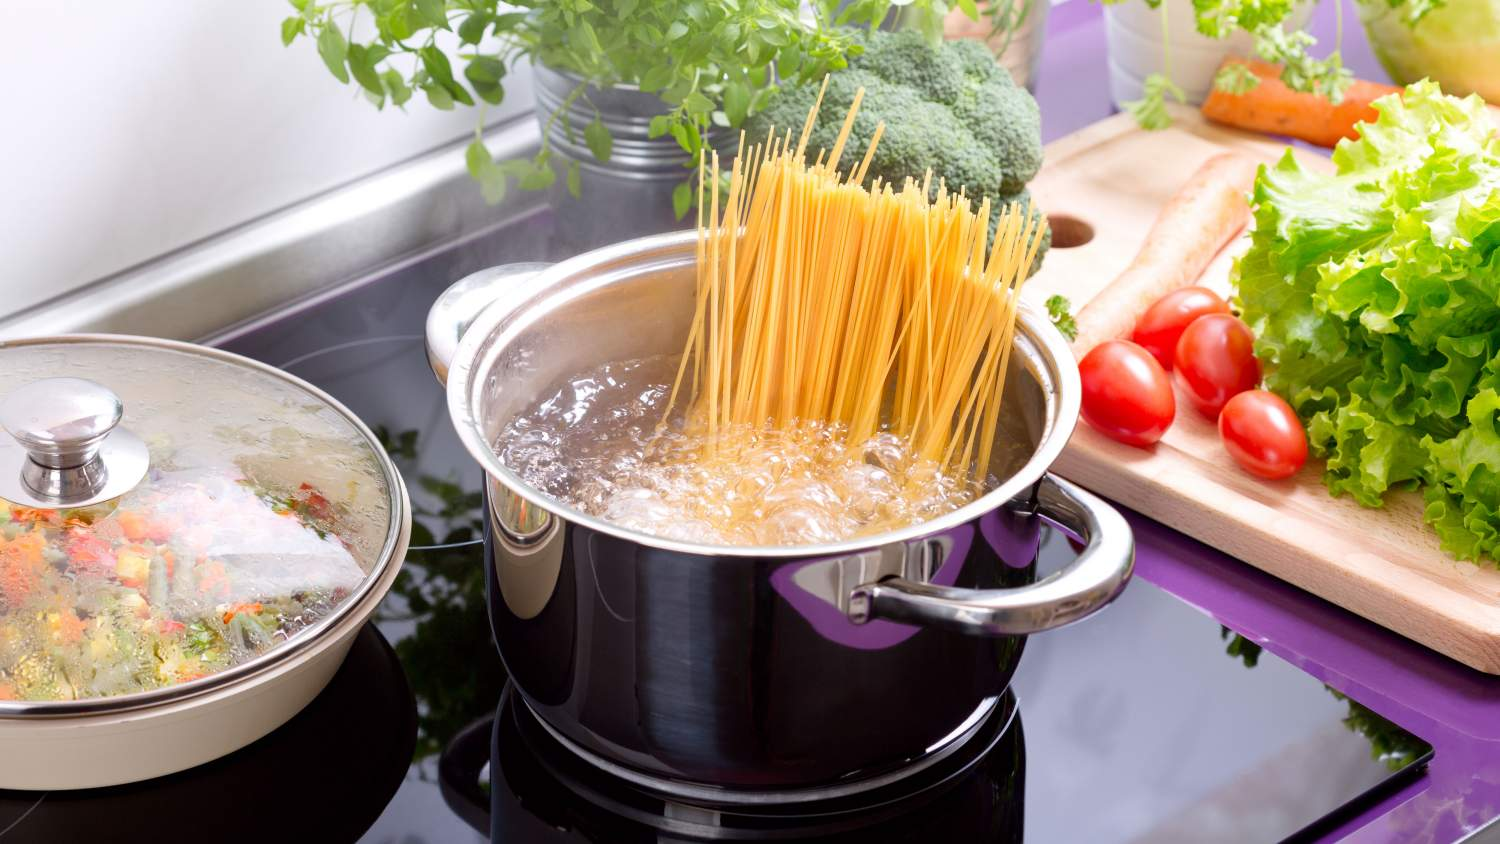 Pasta in boiling water